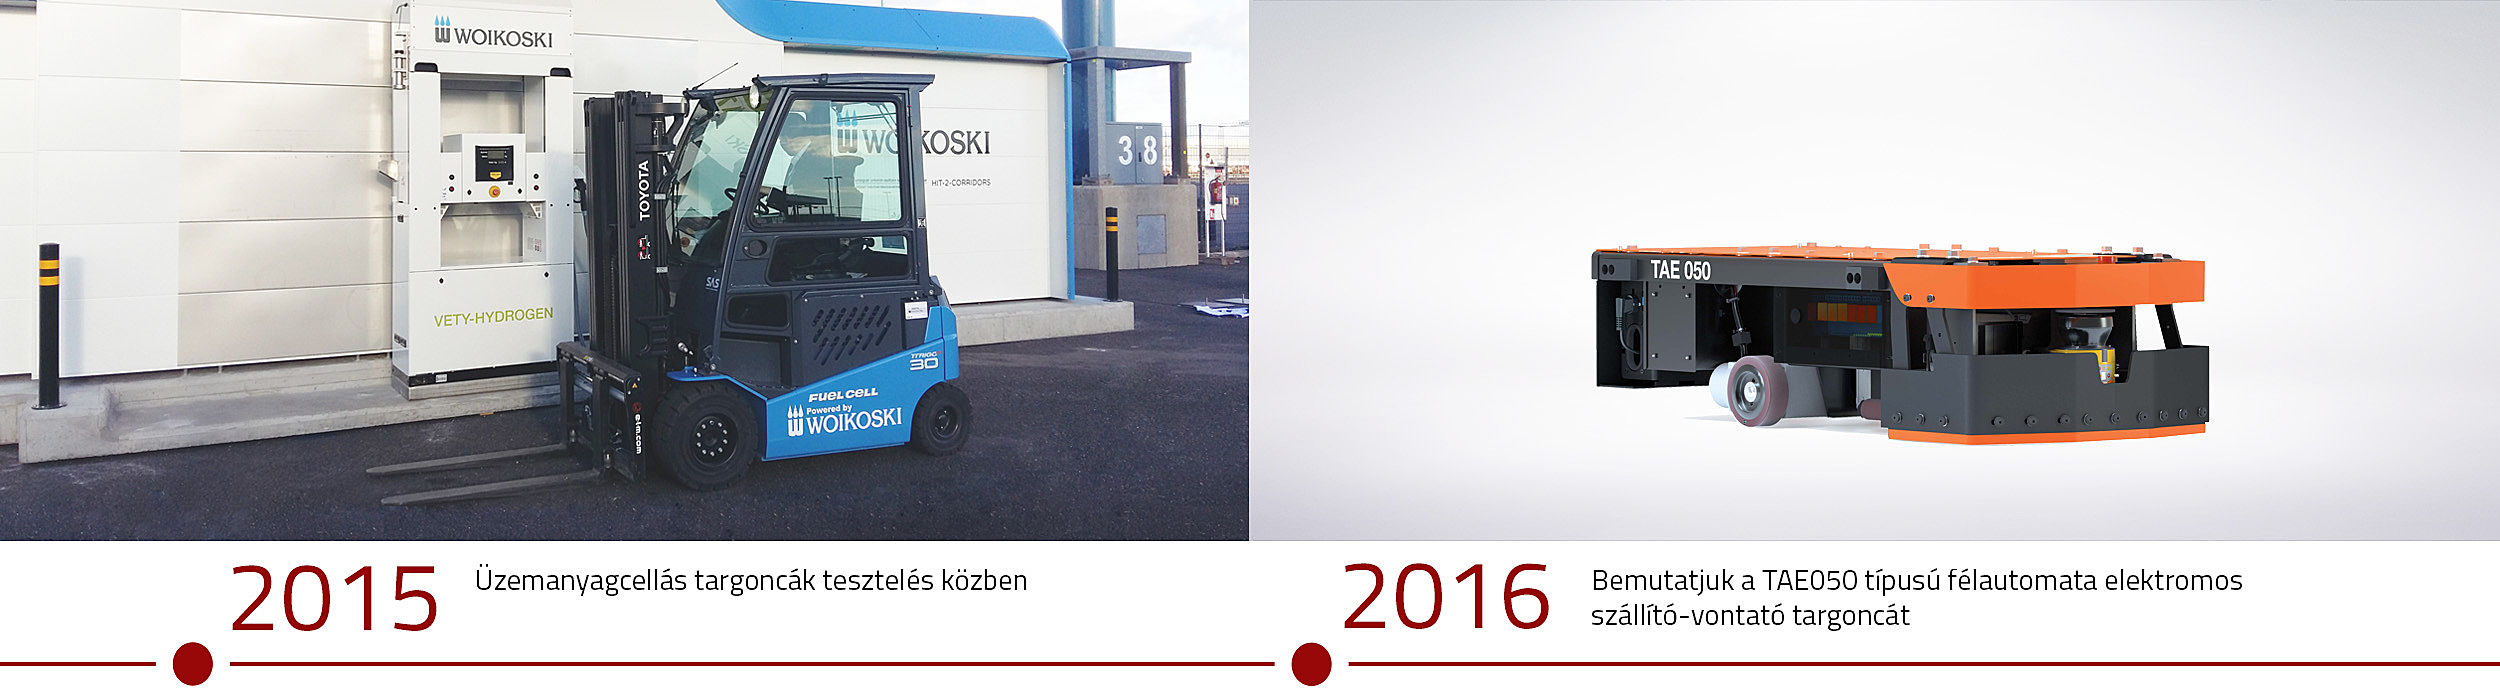 History Toyota Material Handling 2015 and 2016